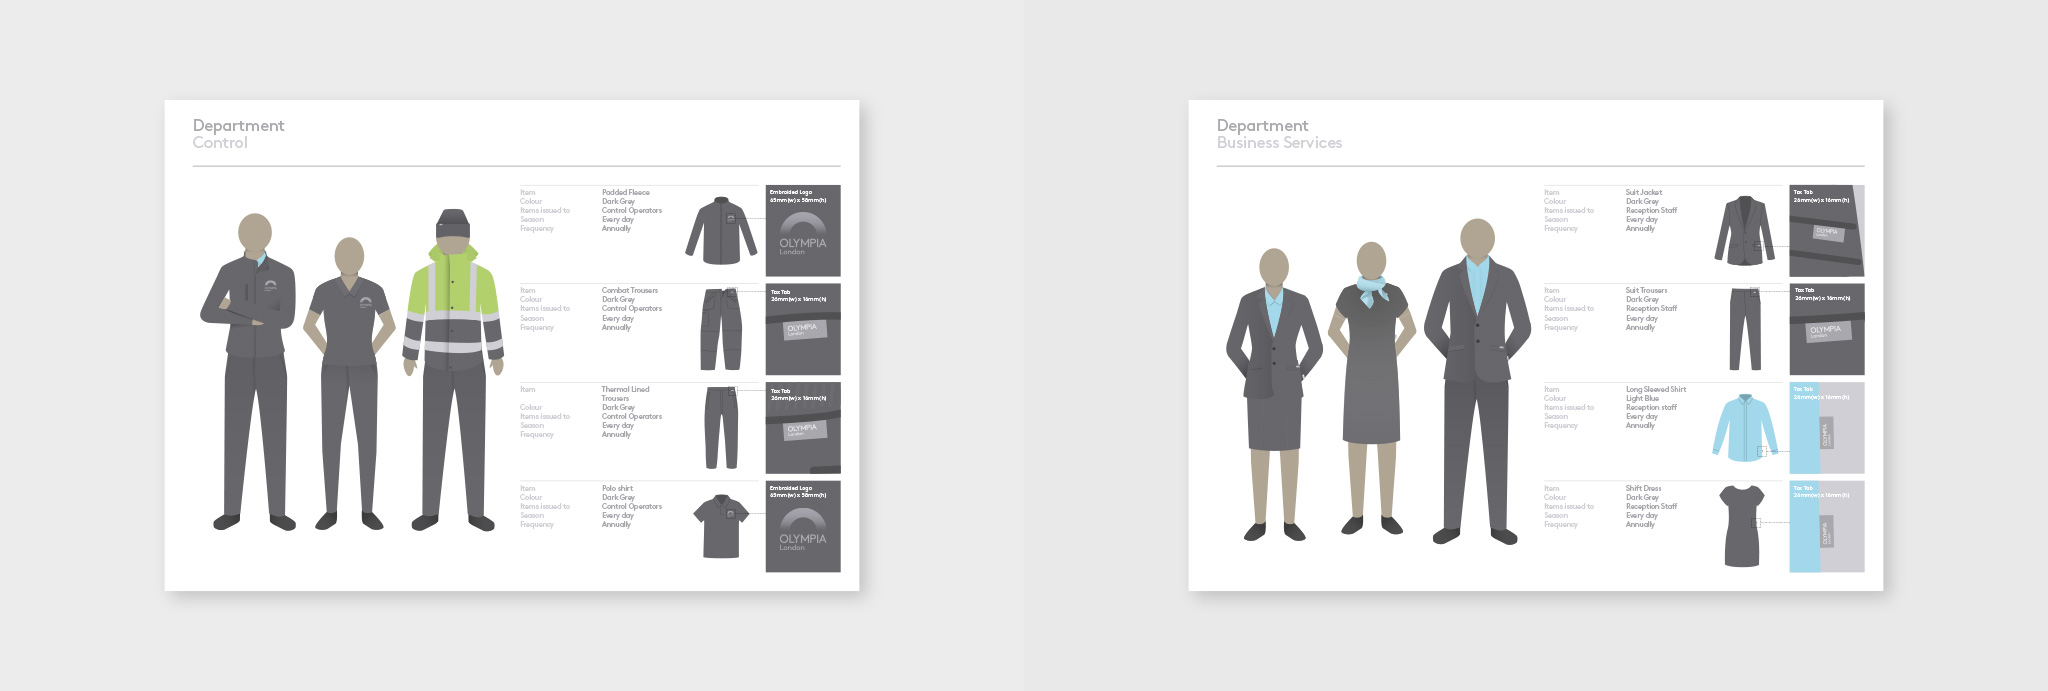 illustration design of the uniform guidelines for control and business services